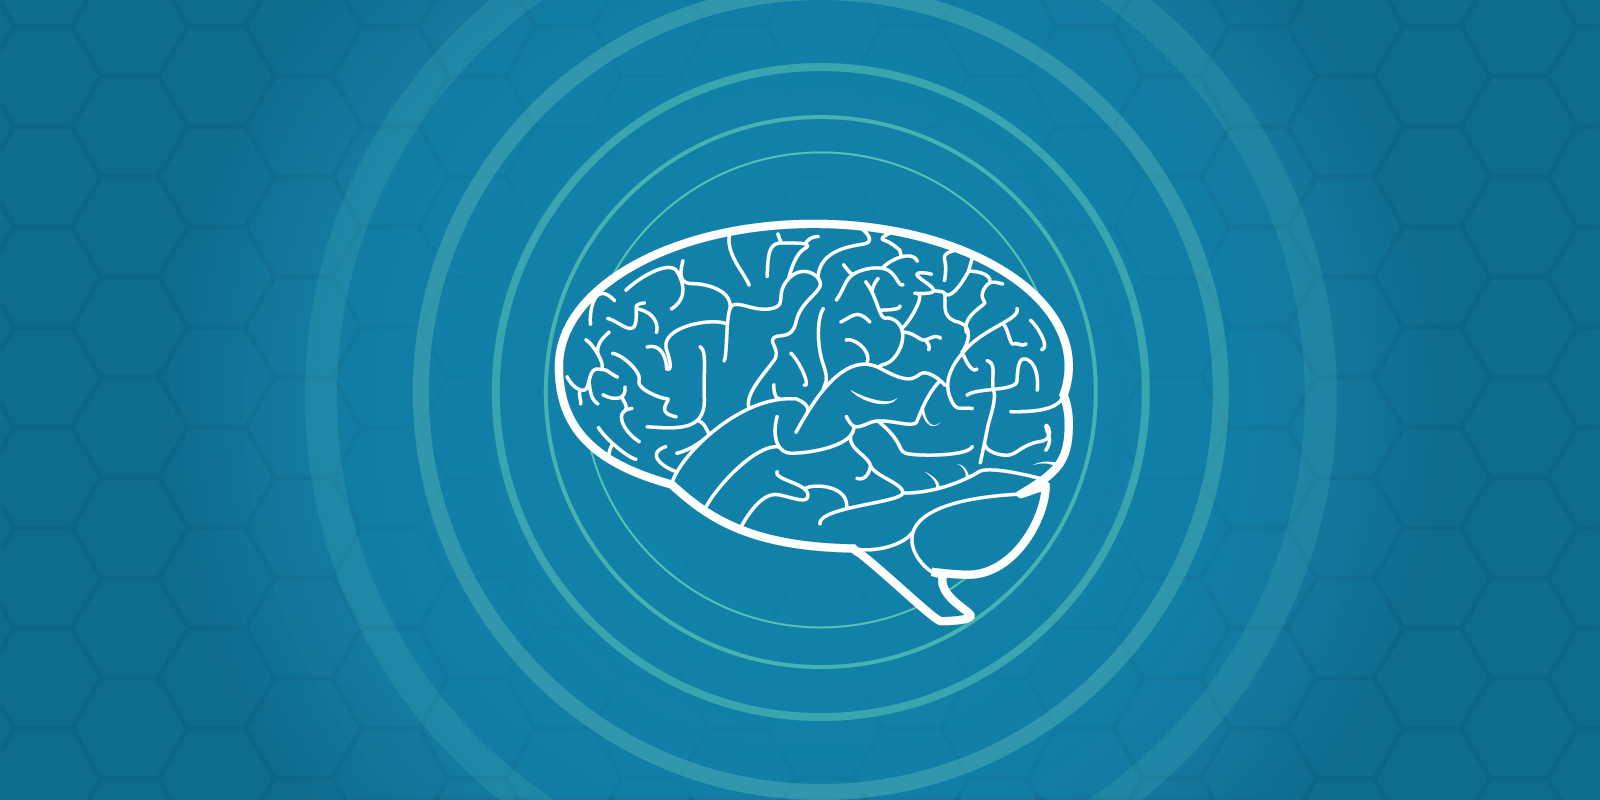 Design Feeling image showing an illustration of a brain and psychic waves coming out of it